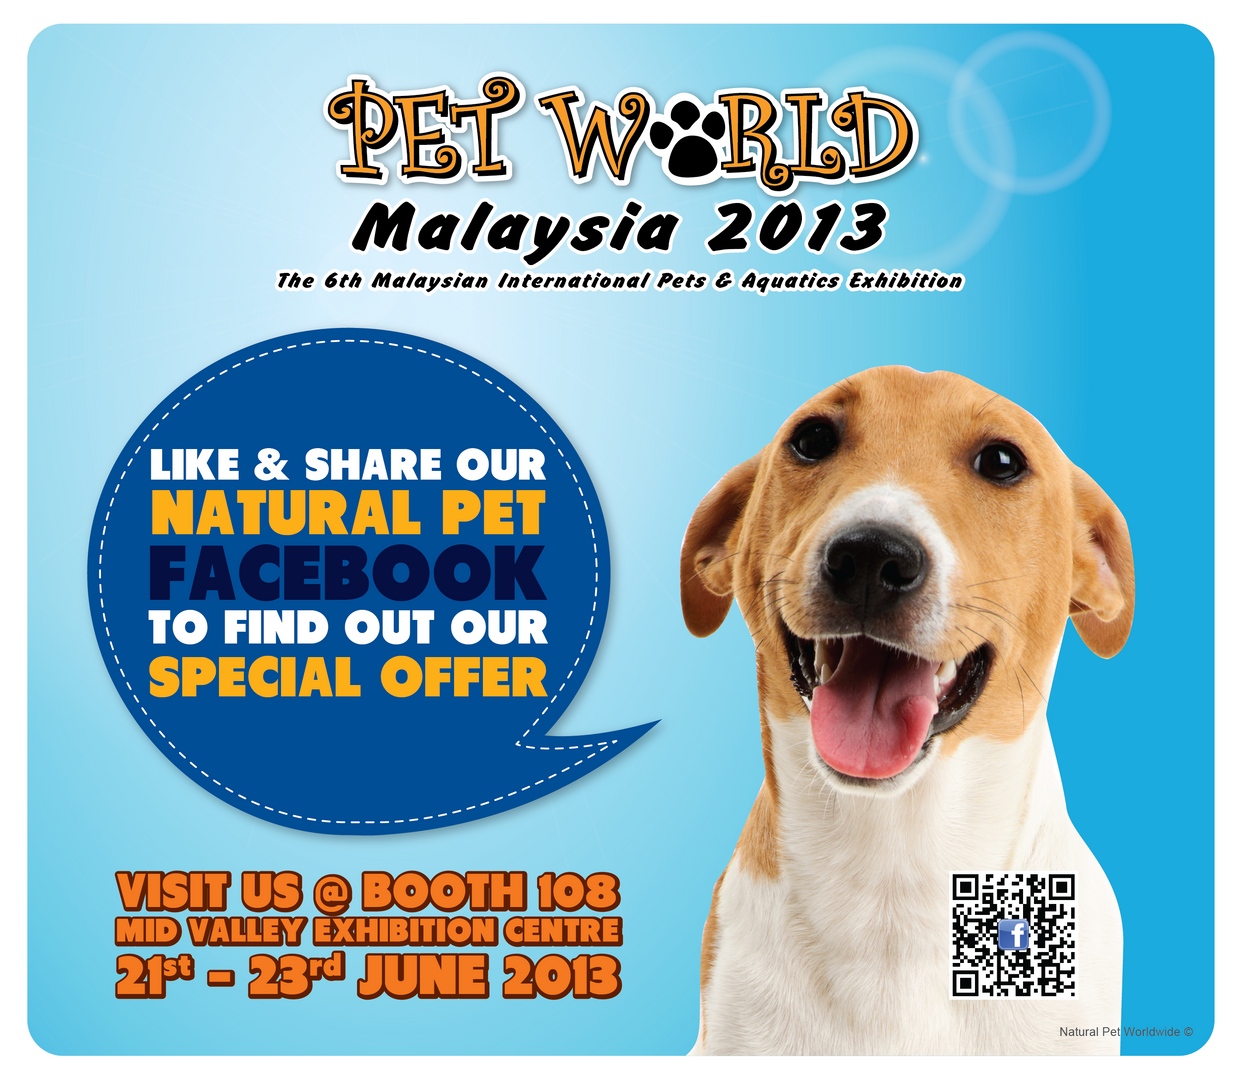 Natural Pet | Pet World Malaysia 2013